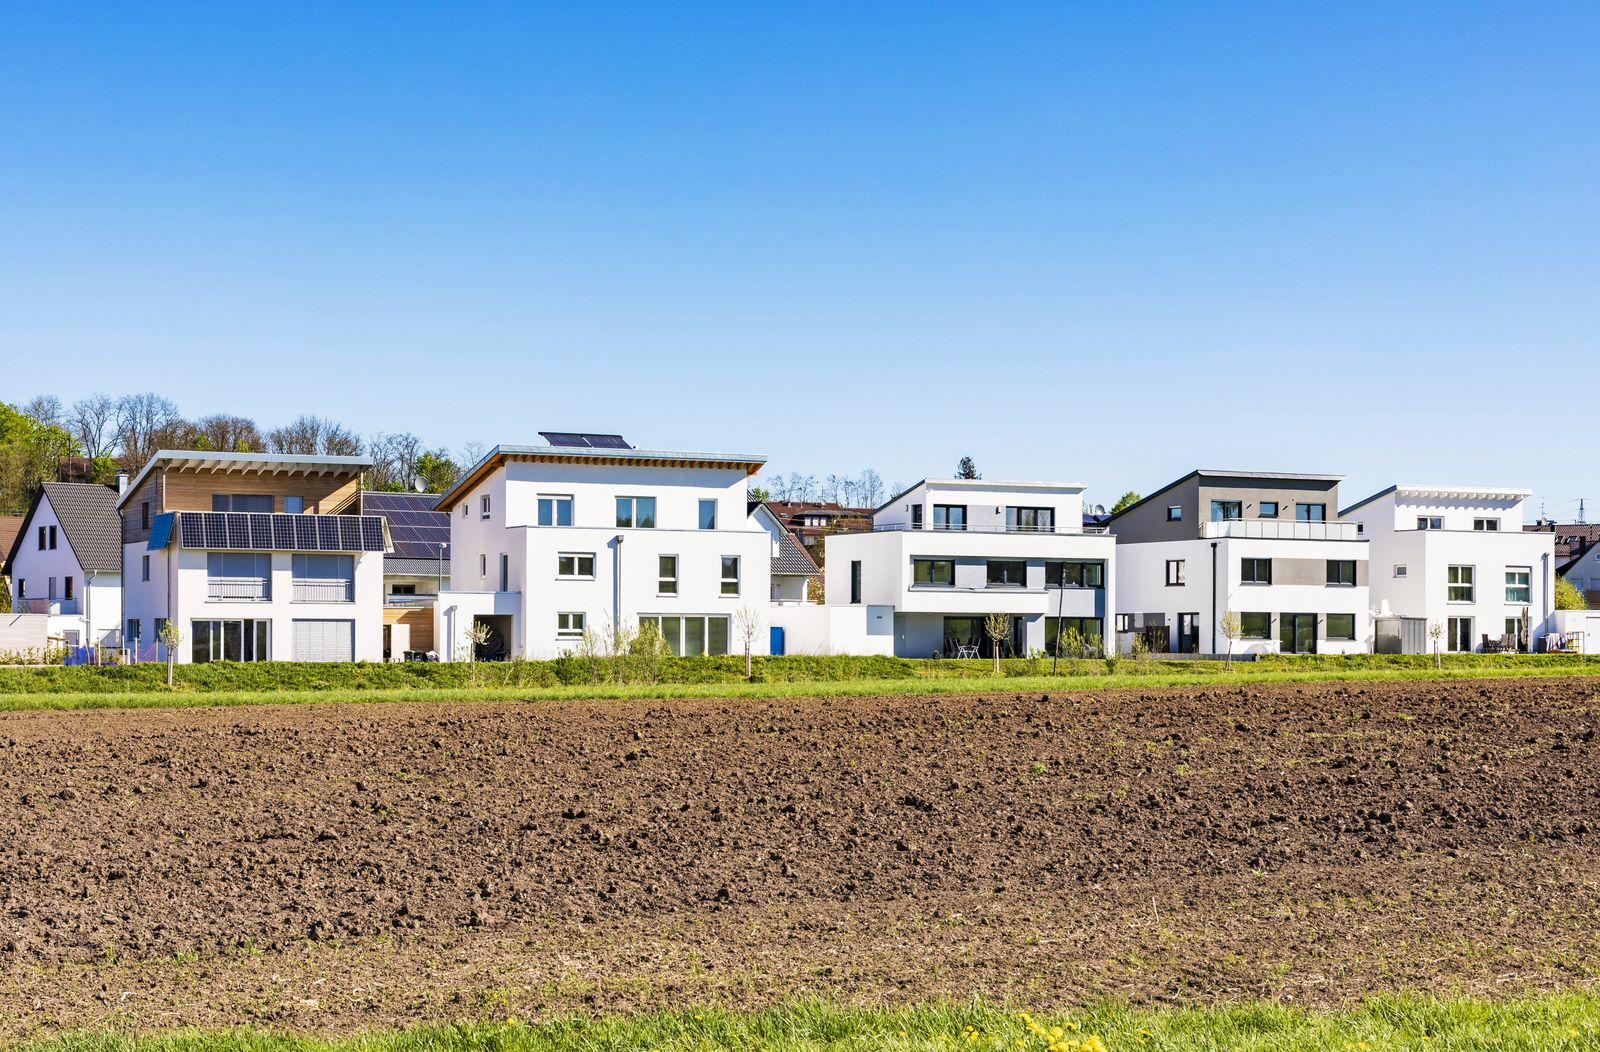 Germany Magstadt modern one family houses with solar thermal energy PUBLICATIONxINxGERxSUIxAUTxHUN